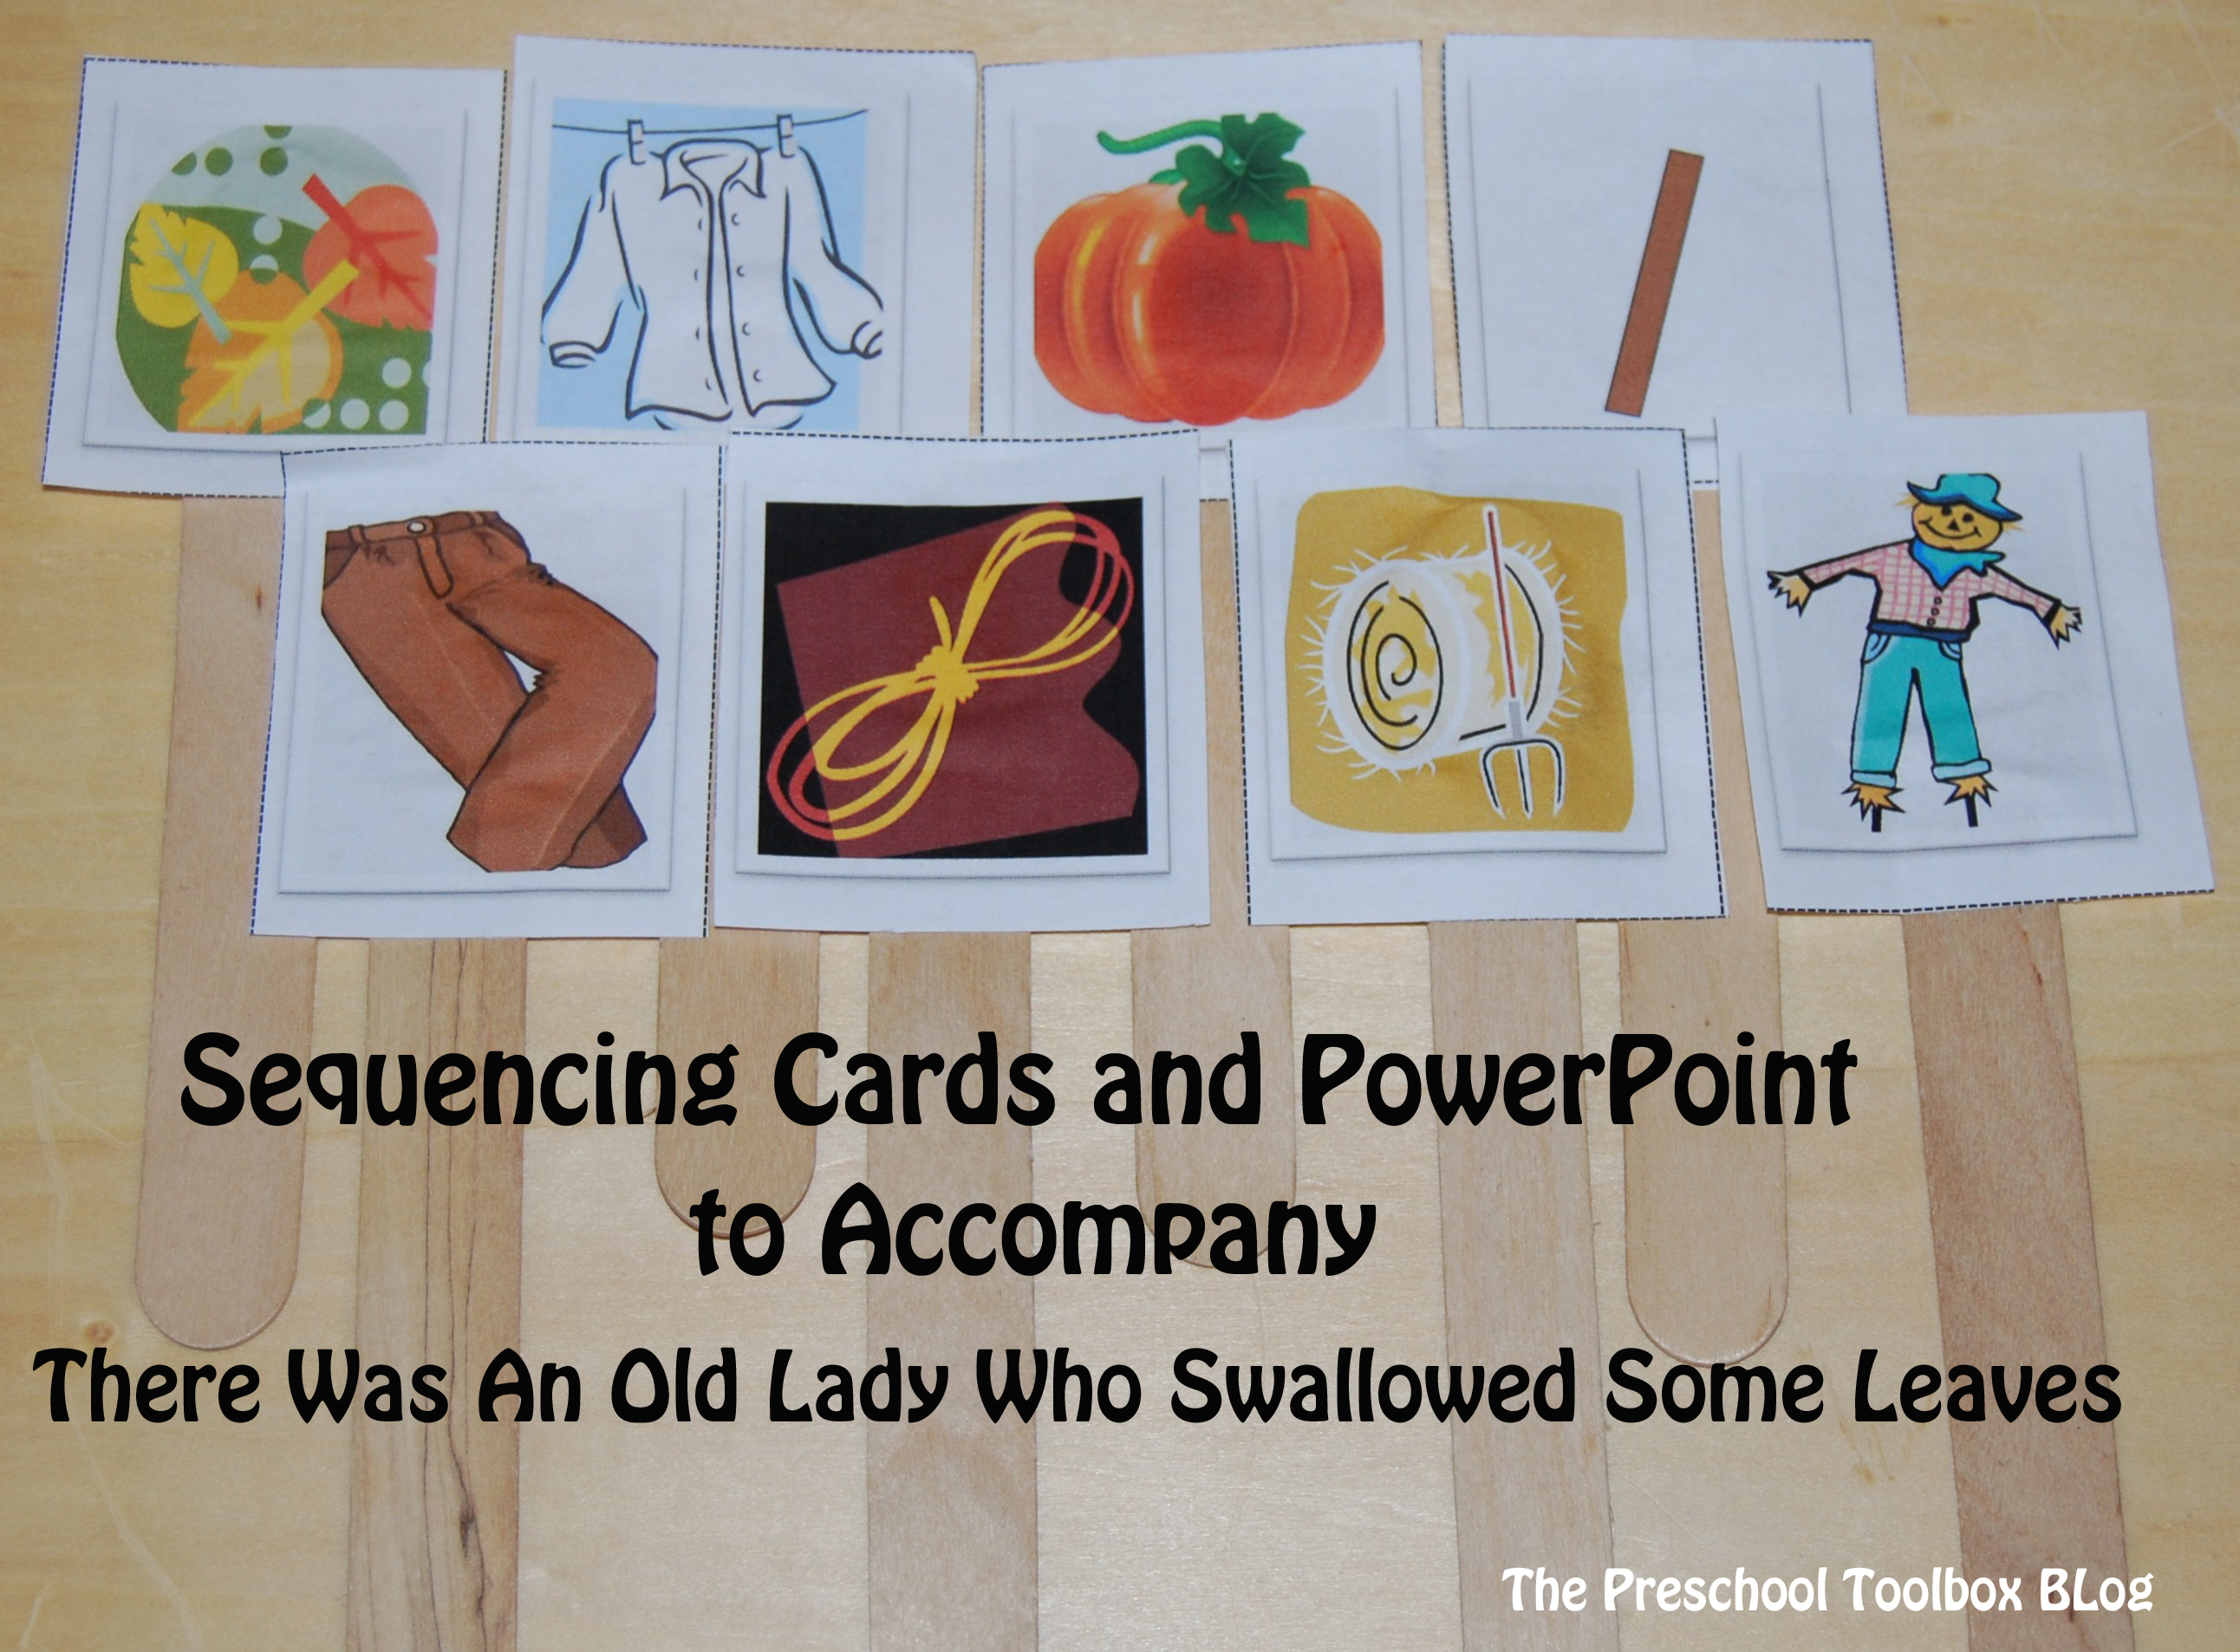 There Was An Old Lady Who Swallowed Some Leaves Sequencing Cards